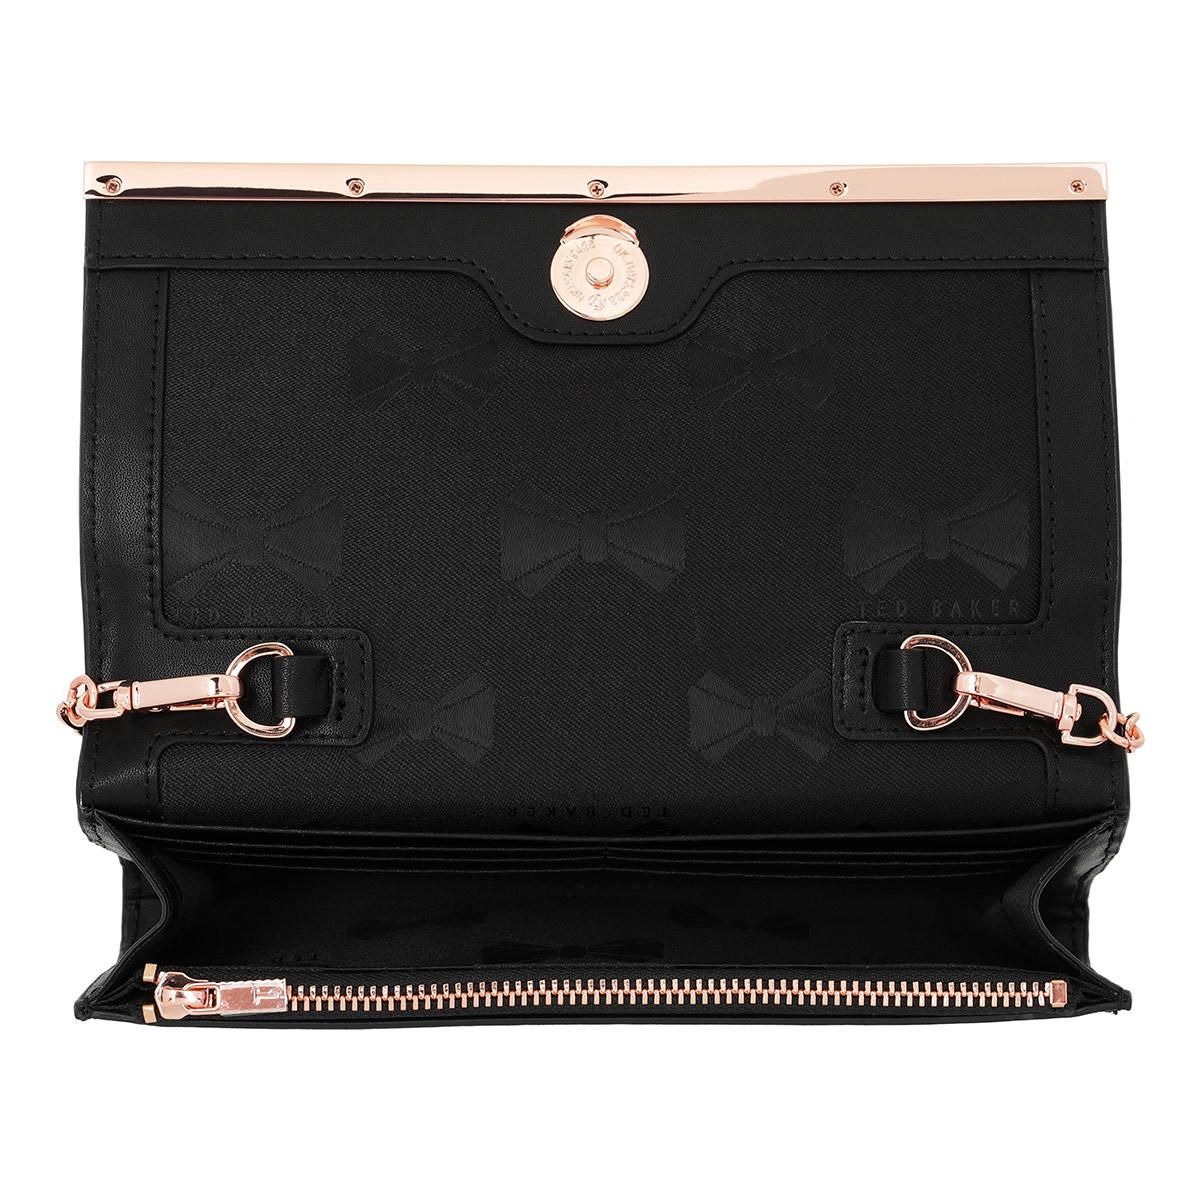 87f4d42784 Ted Baker Natalie Metal Bar Matinee With Chain Wallet Black in Black ...